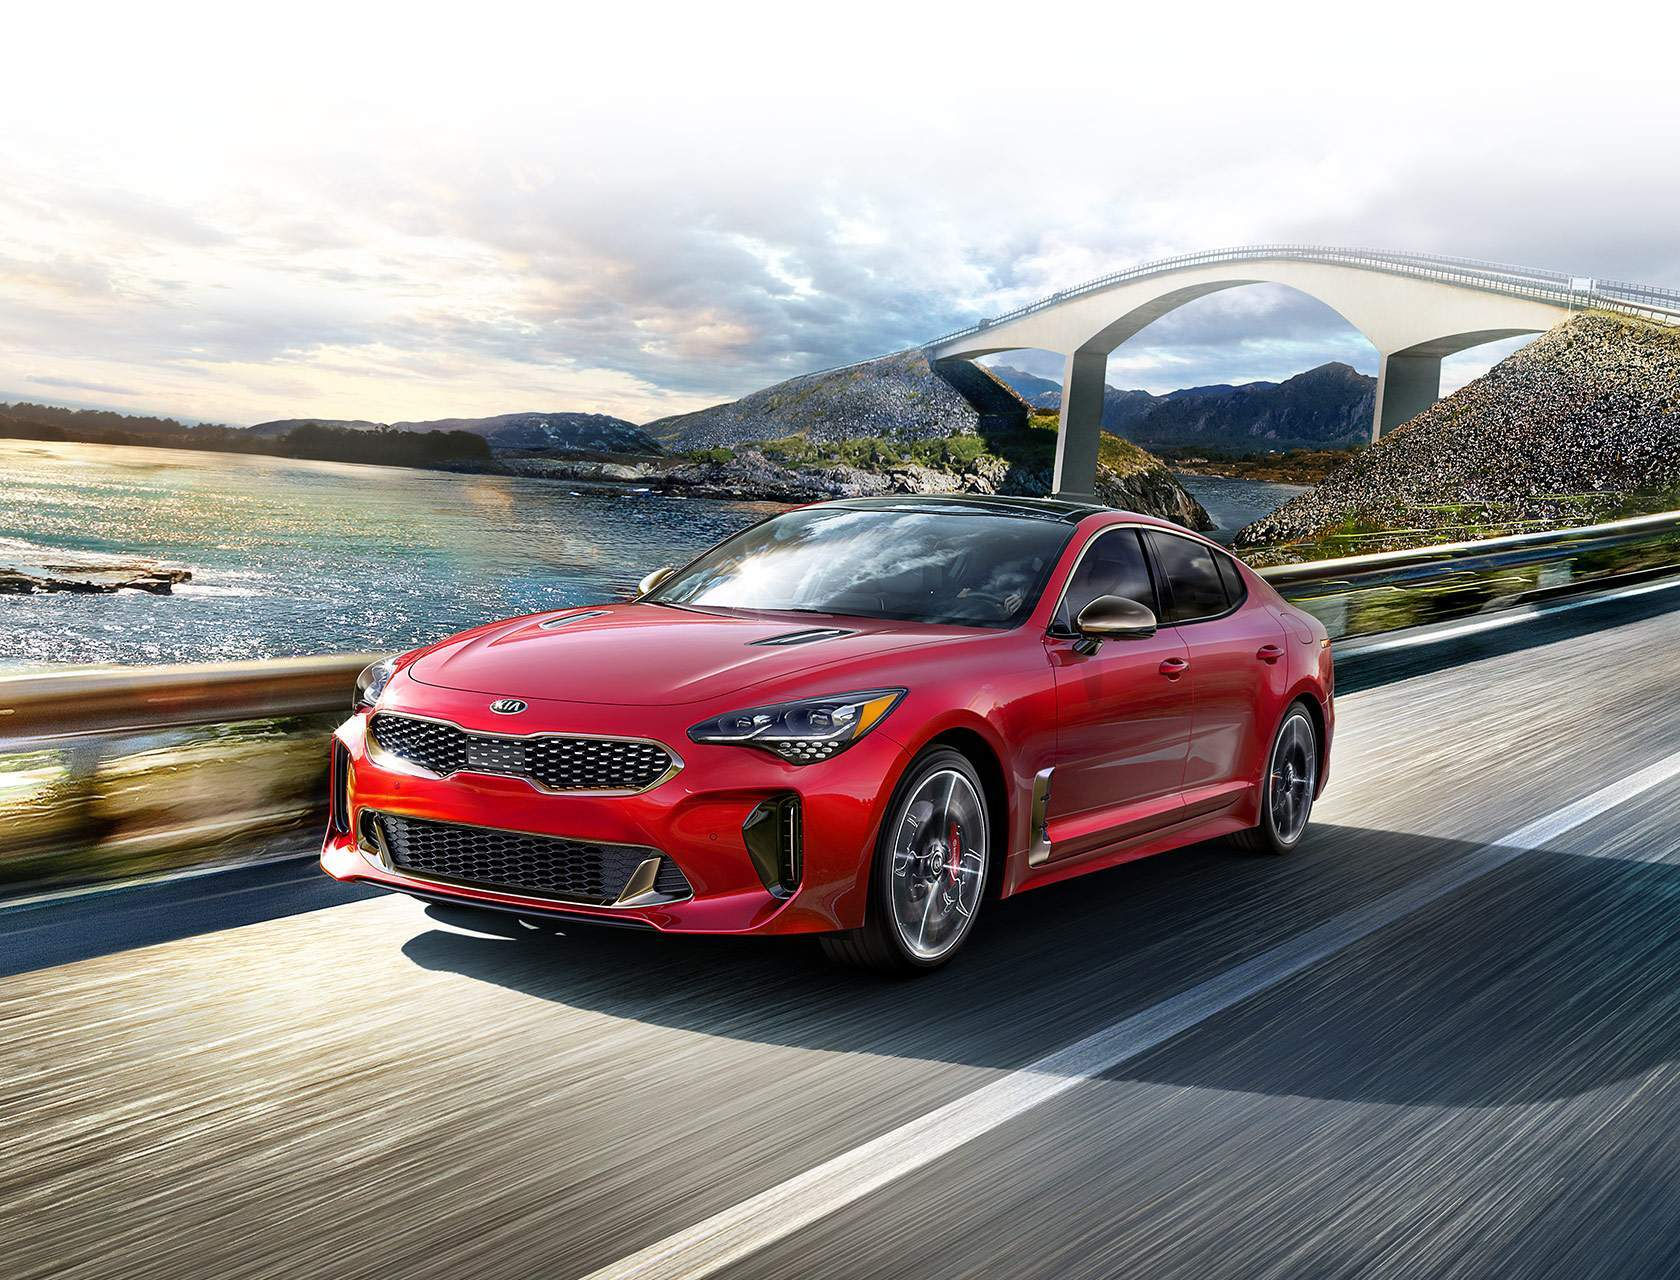 2018 Kia Stinger in New Port Richey, FL